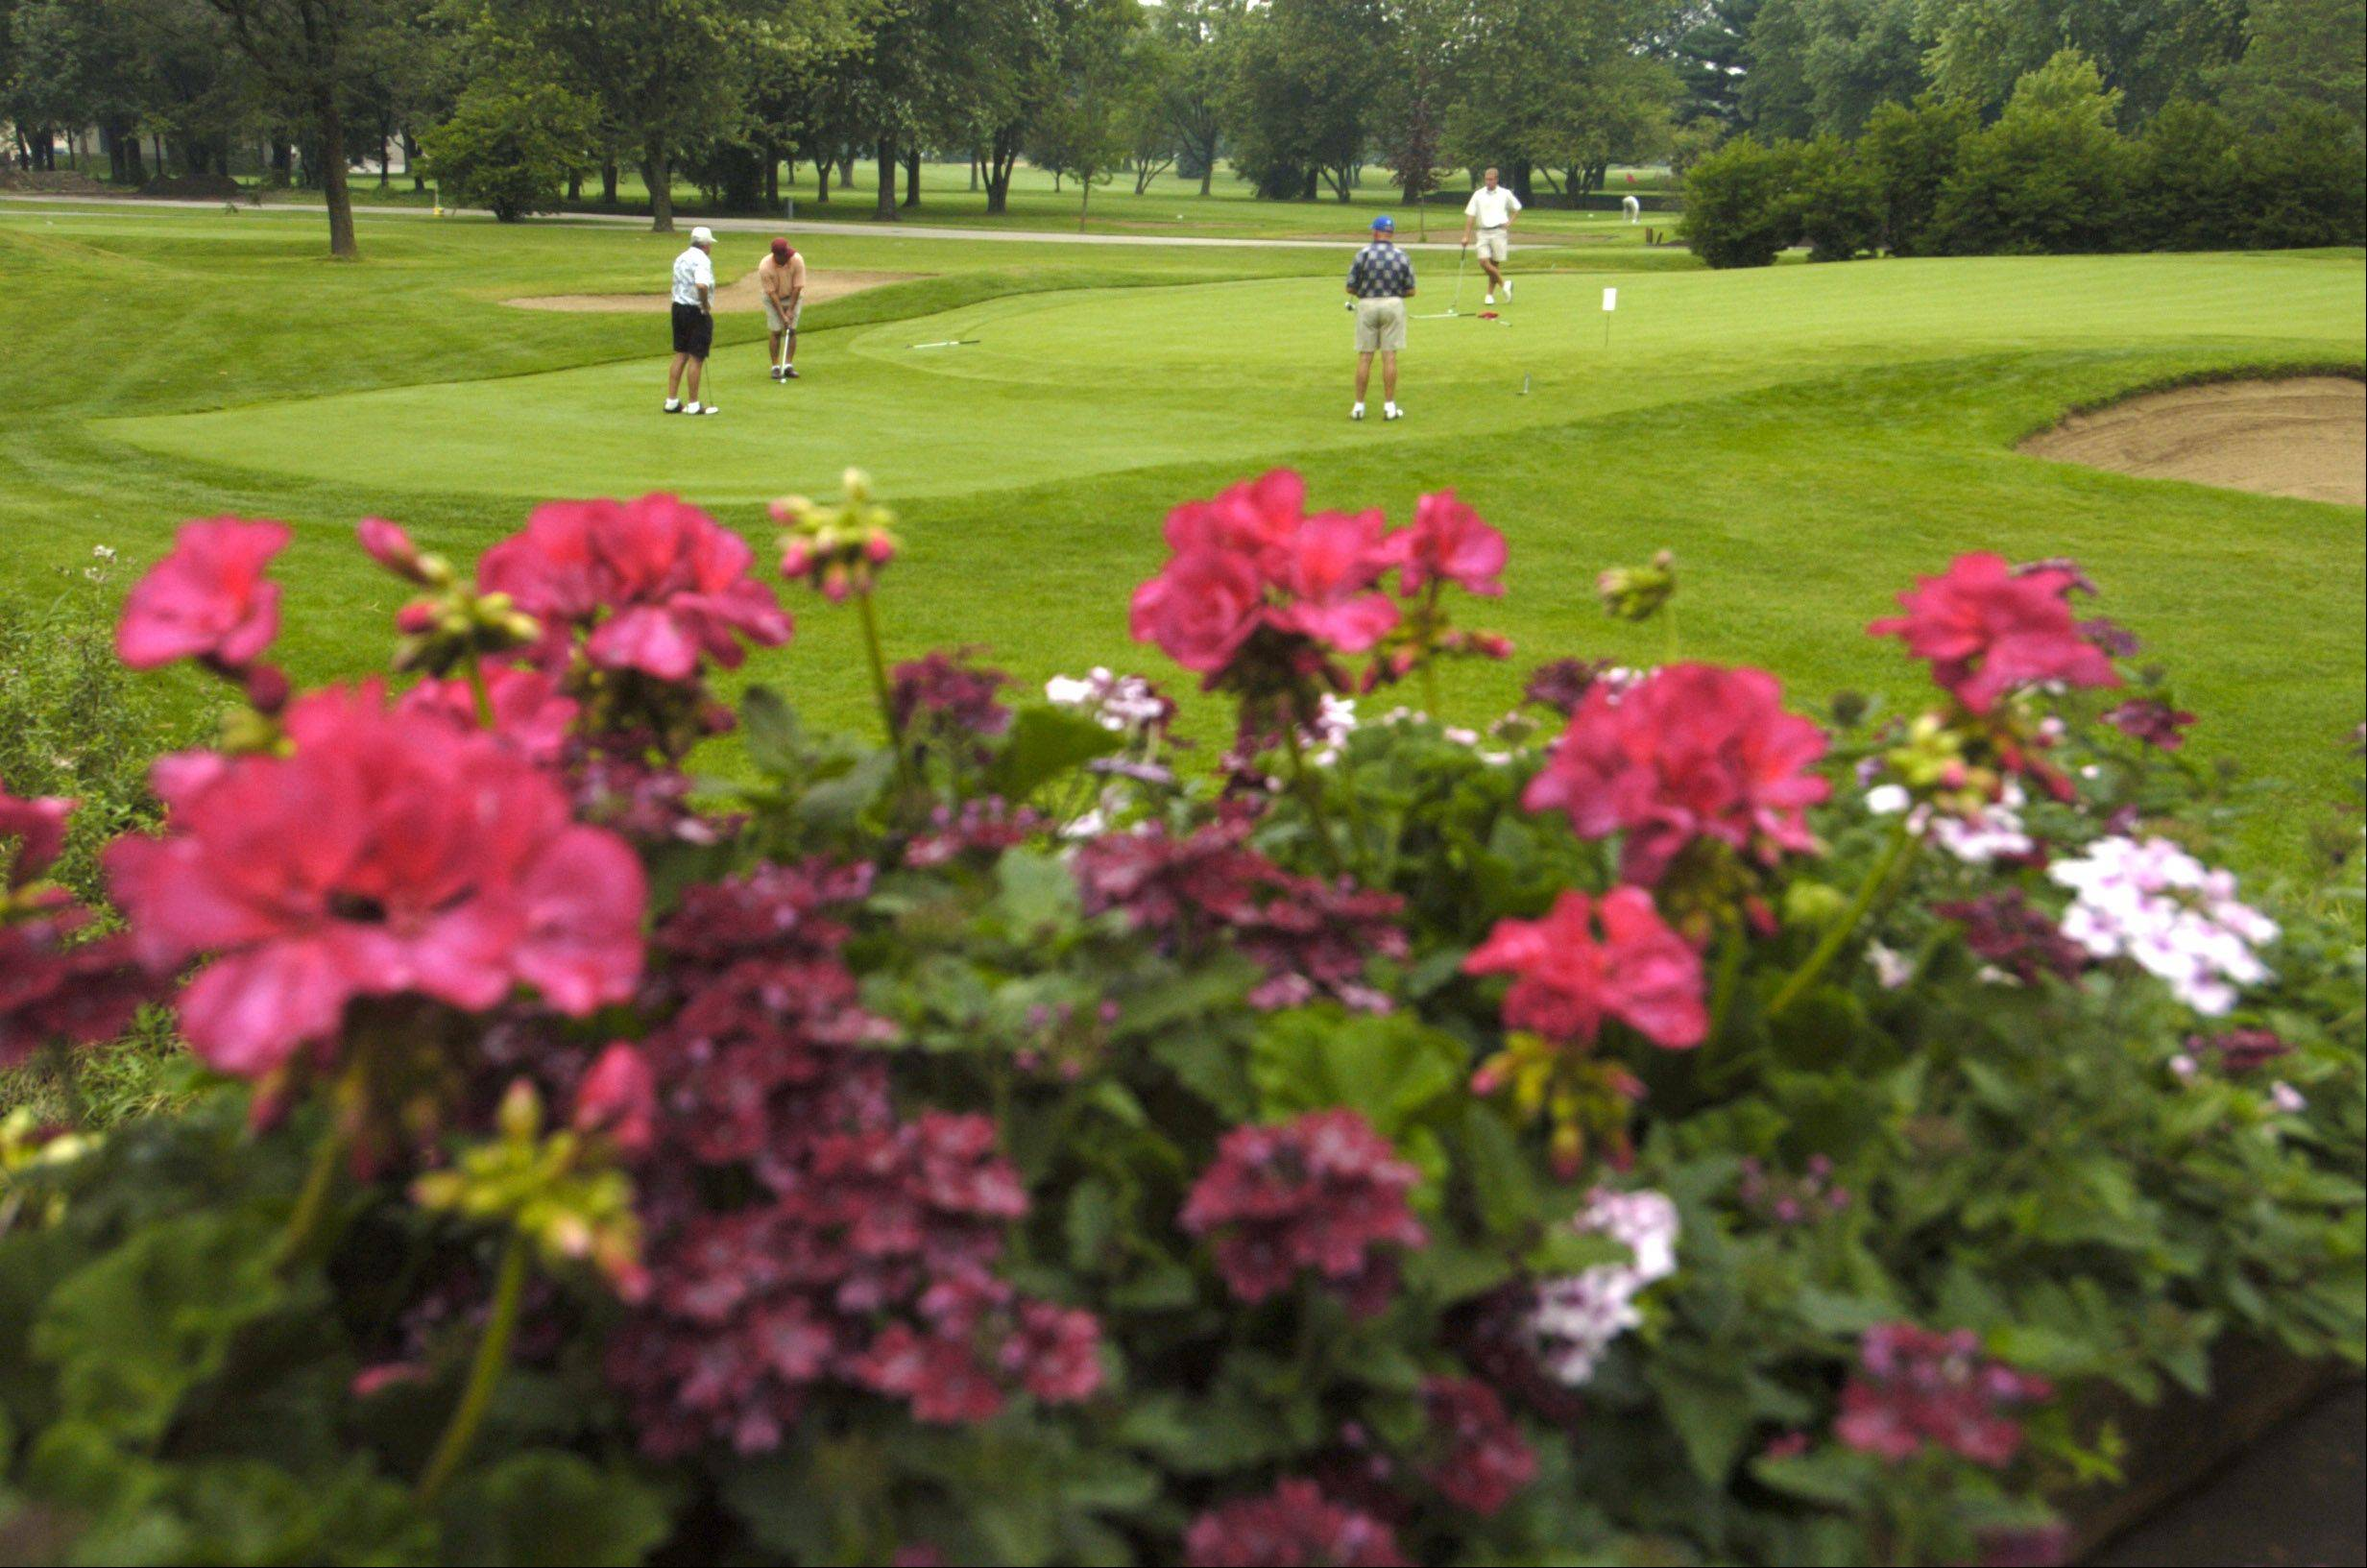 A $5 million plan to renovate the course at the Mount Prospect Golf Club is resurfacing, as is criticism and opposition to the proposal. Mount Prospect Park District officials say there is nothing immediate in the works.